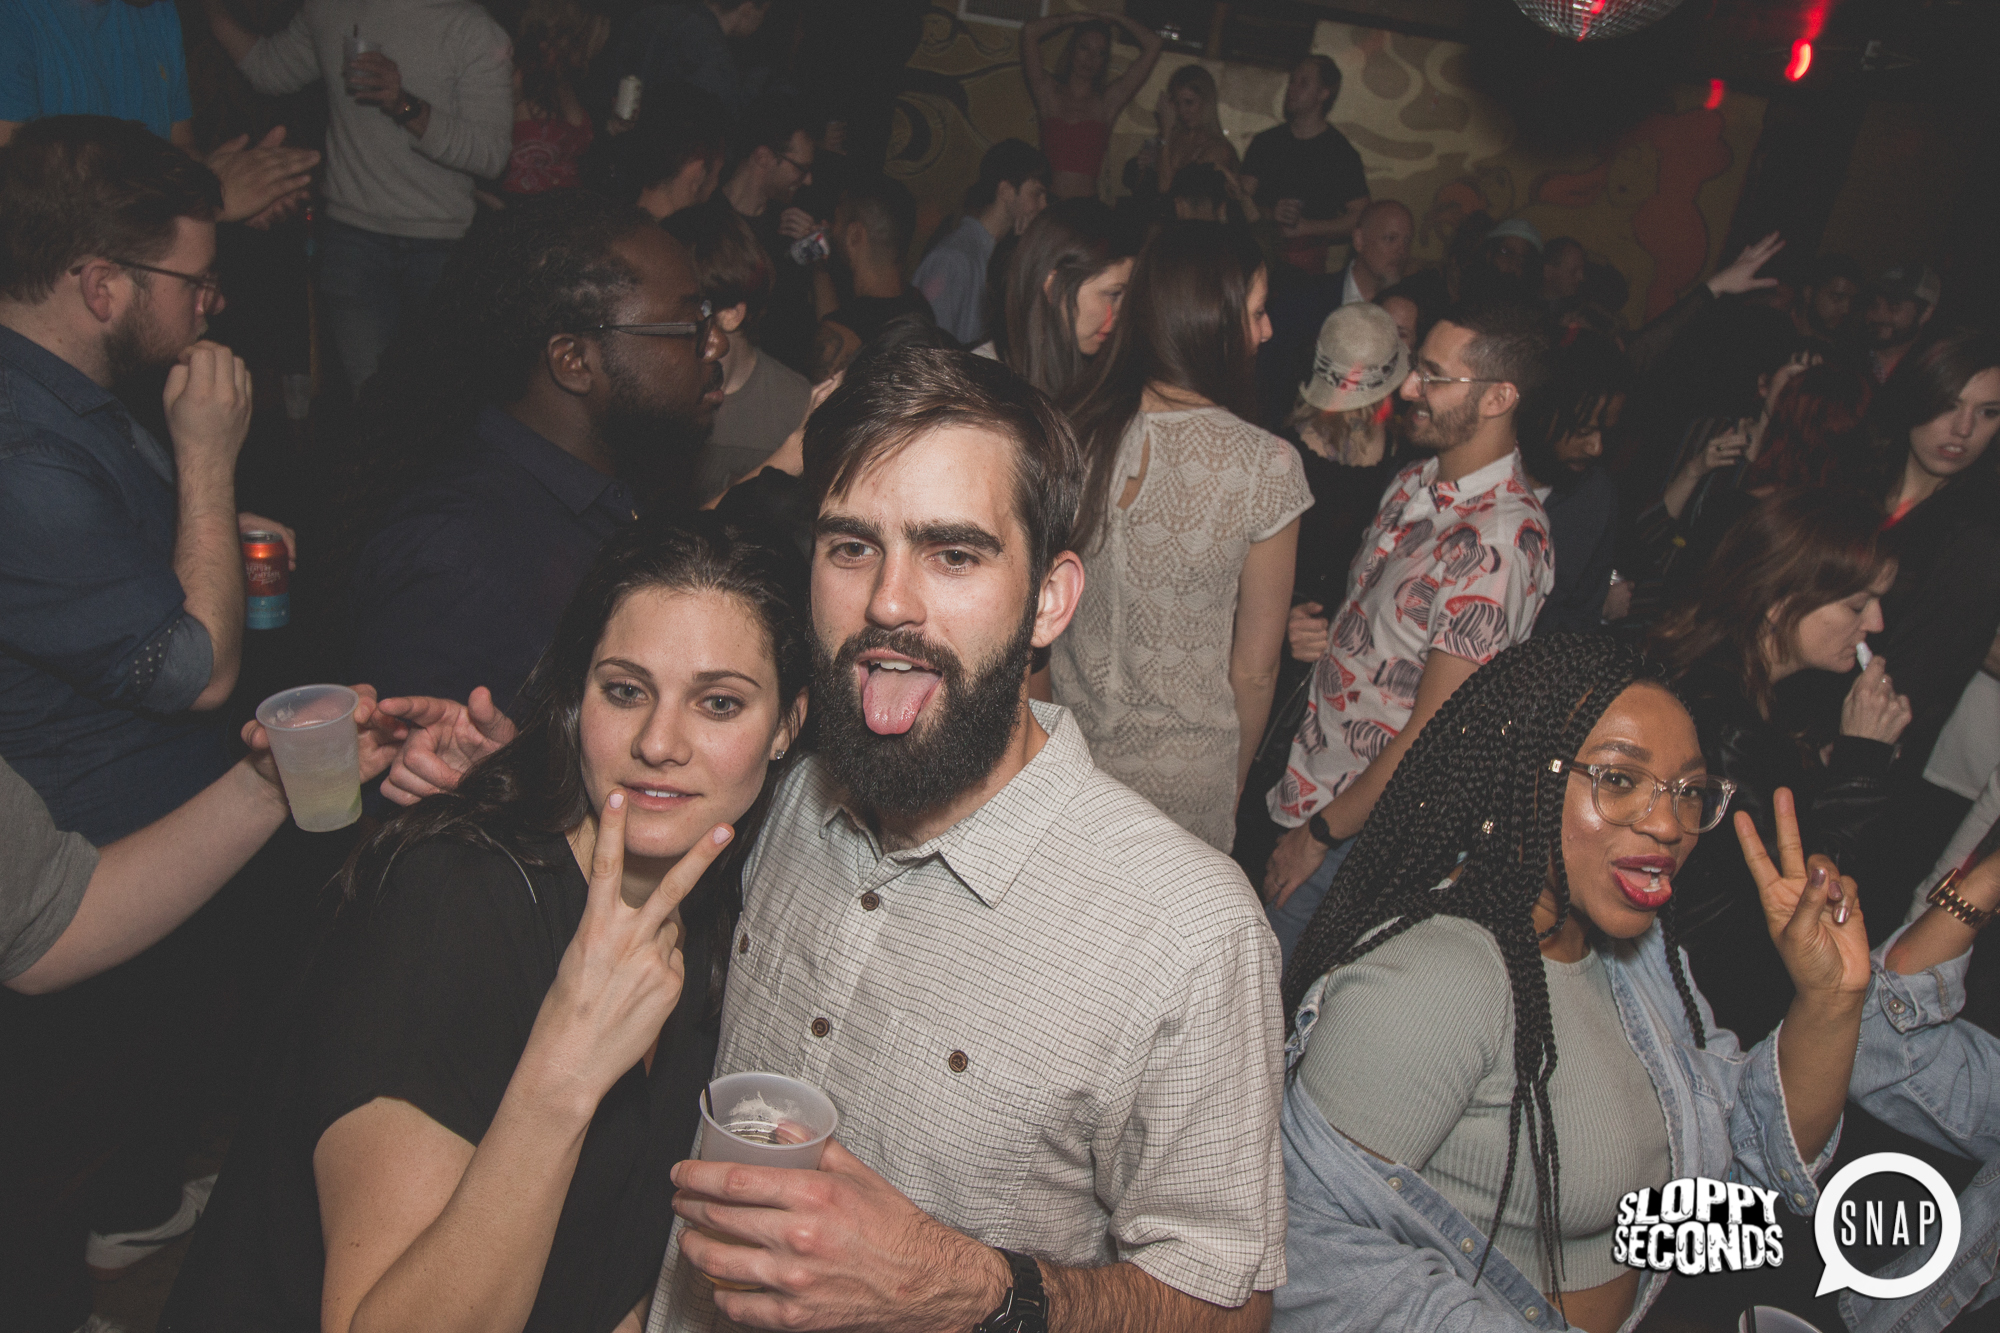 2Sloppy Seconds March2019 oh snap kid atlanta4.JPG